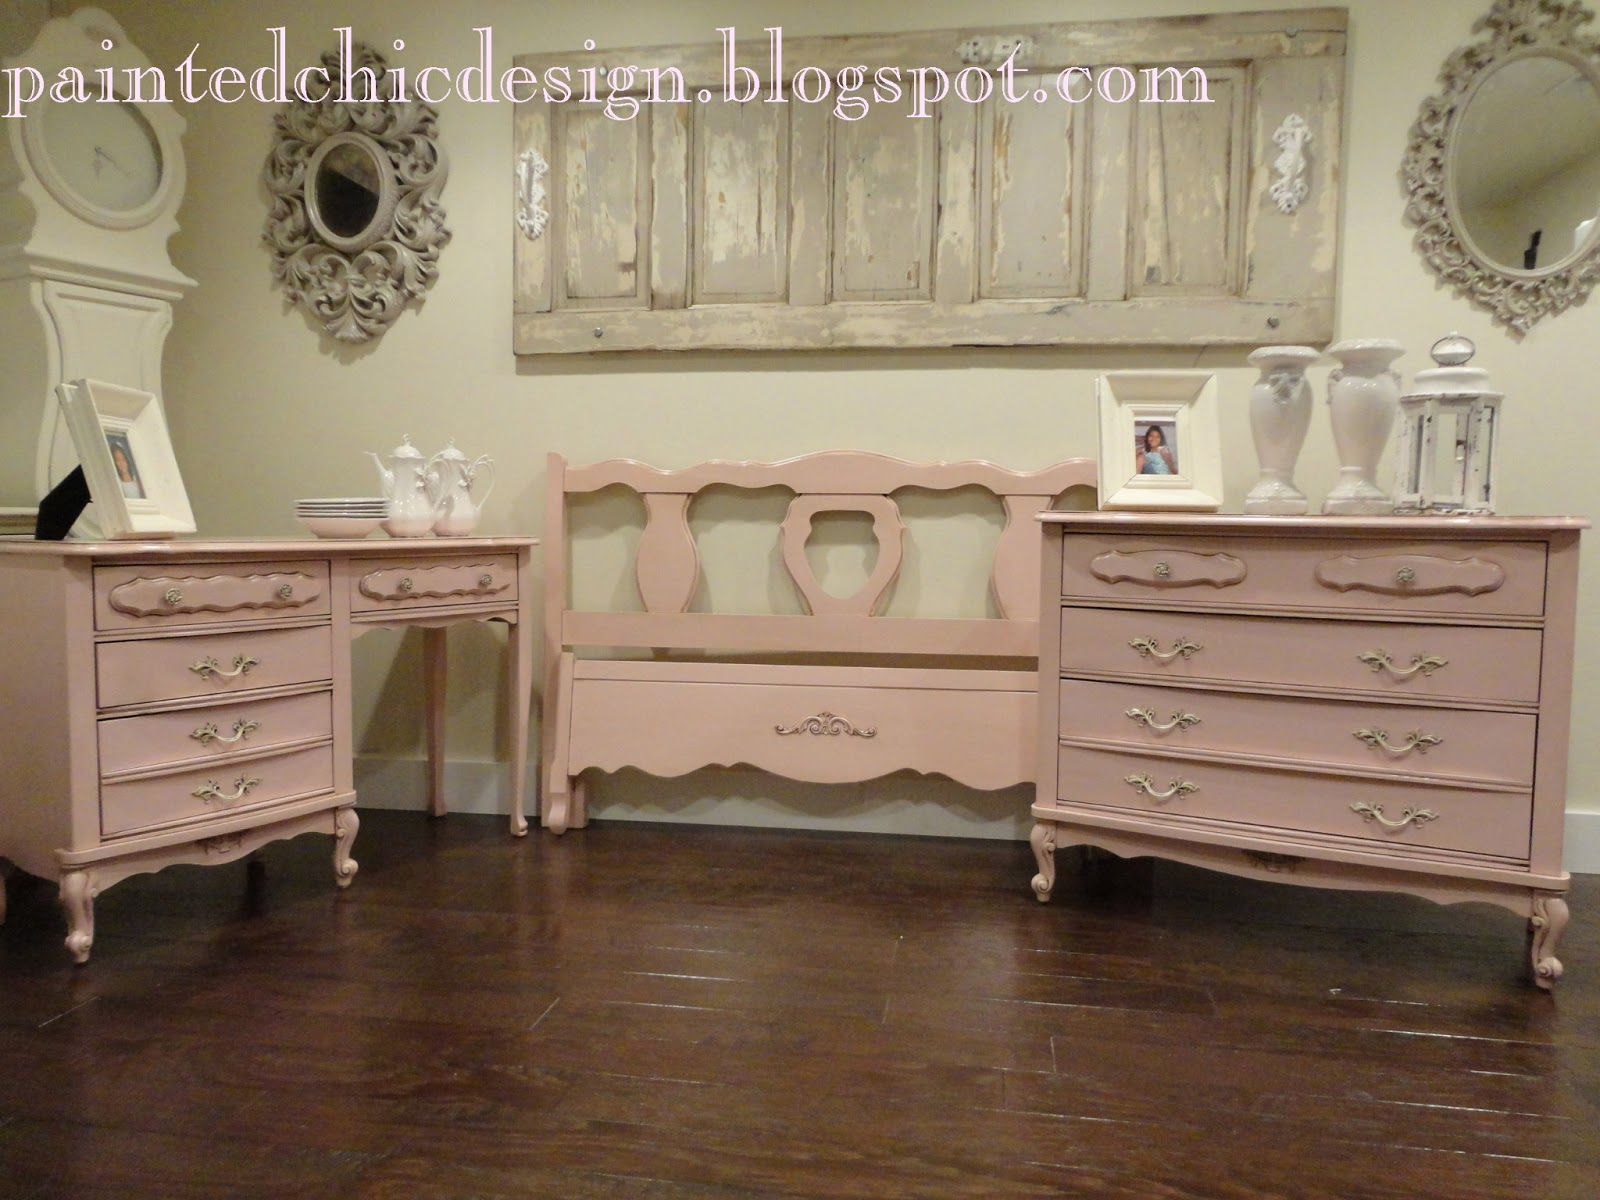 The Painted Chic Design Shabby Dresser SOLDSOLD